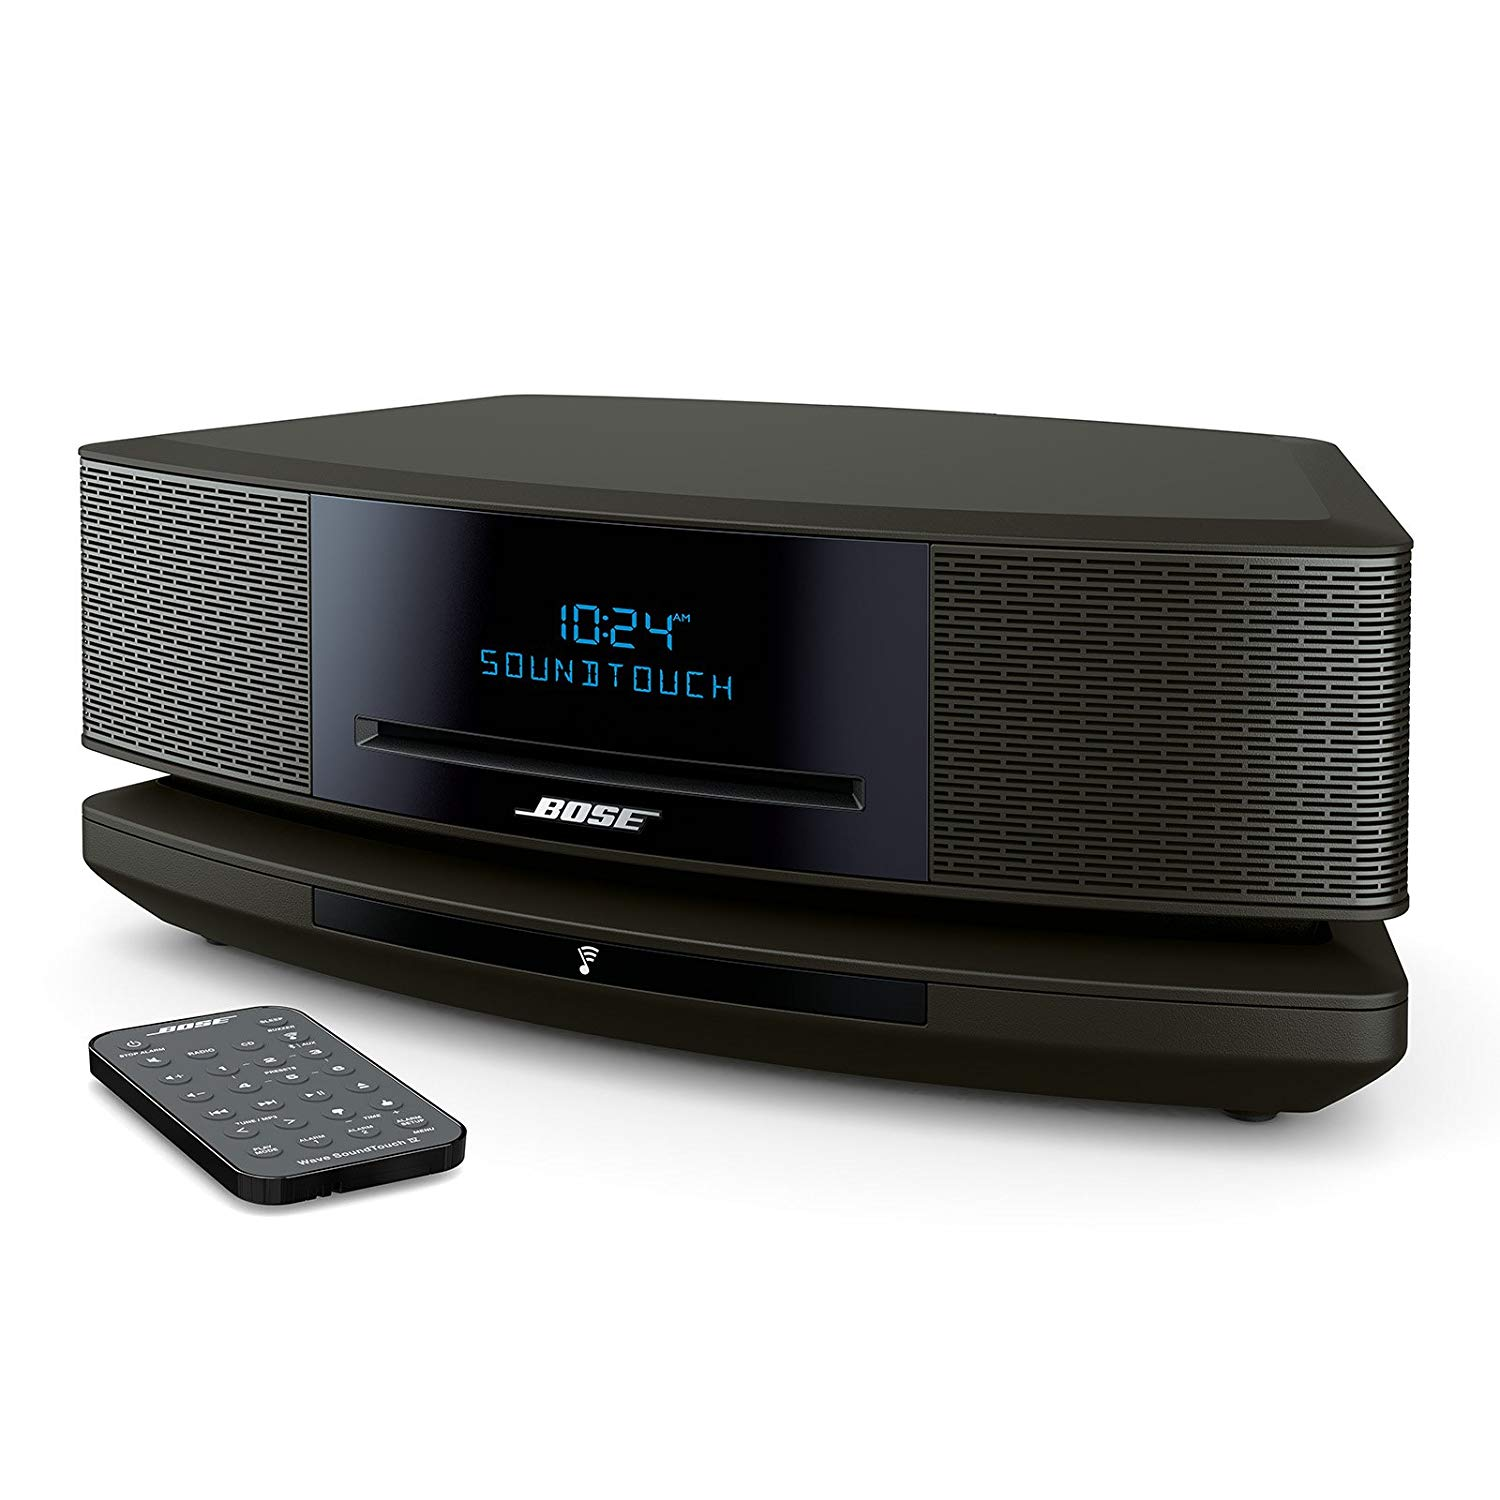 The 10 Best Home Stereo Systems of 2019 • Audiostance